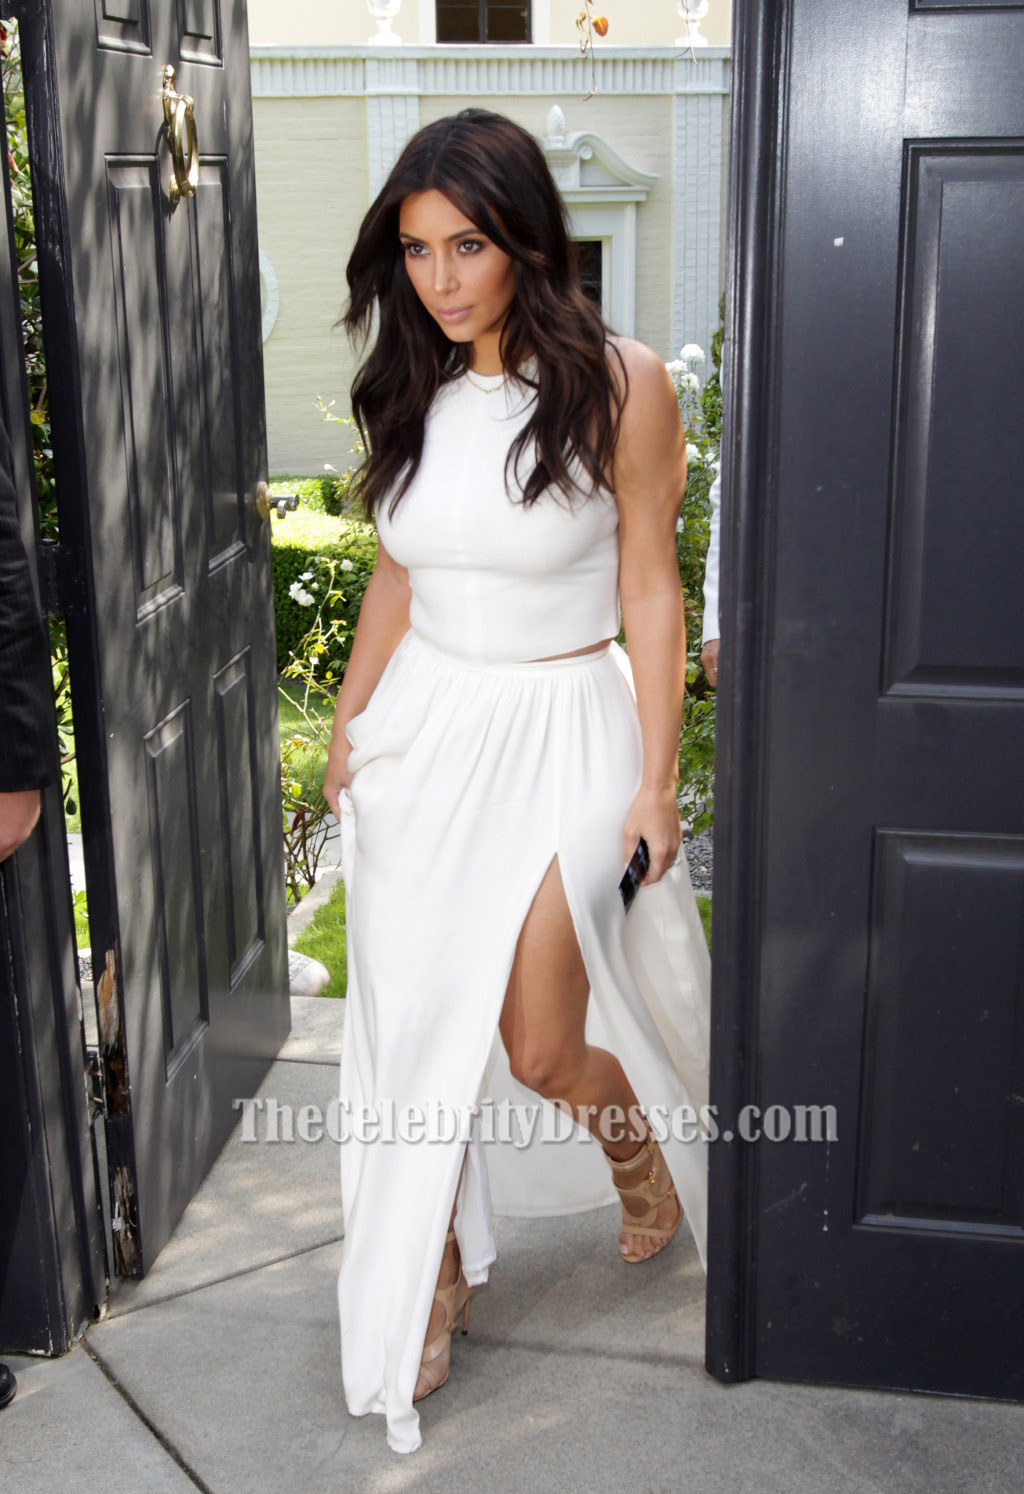 Kim Kardashian U0027Ciarau0027s Baby Shower Outiftu0027 White Two Pieces Dress    TheCelebrityDresses